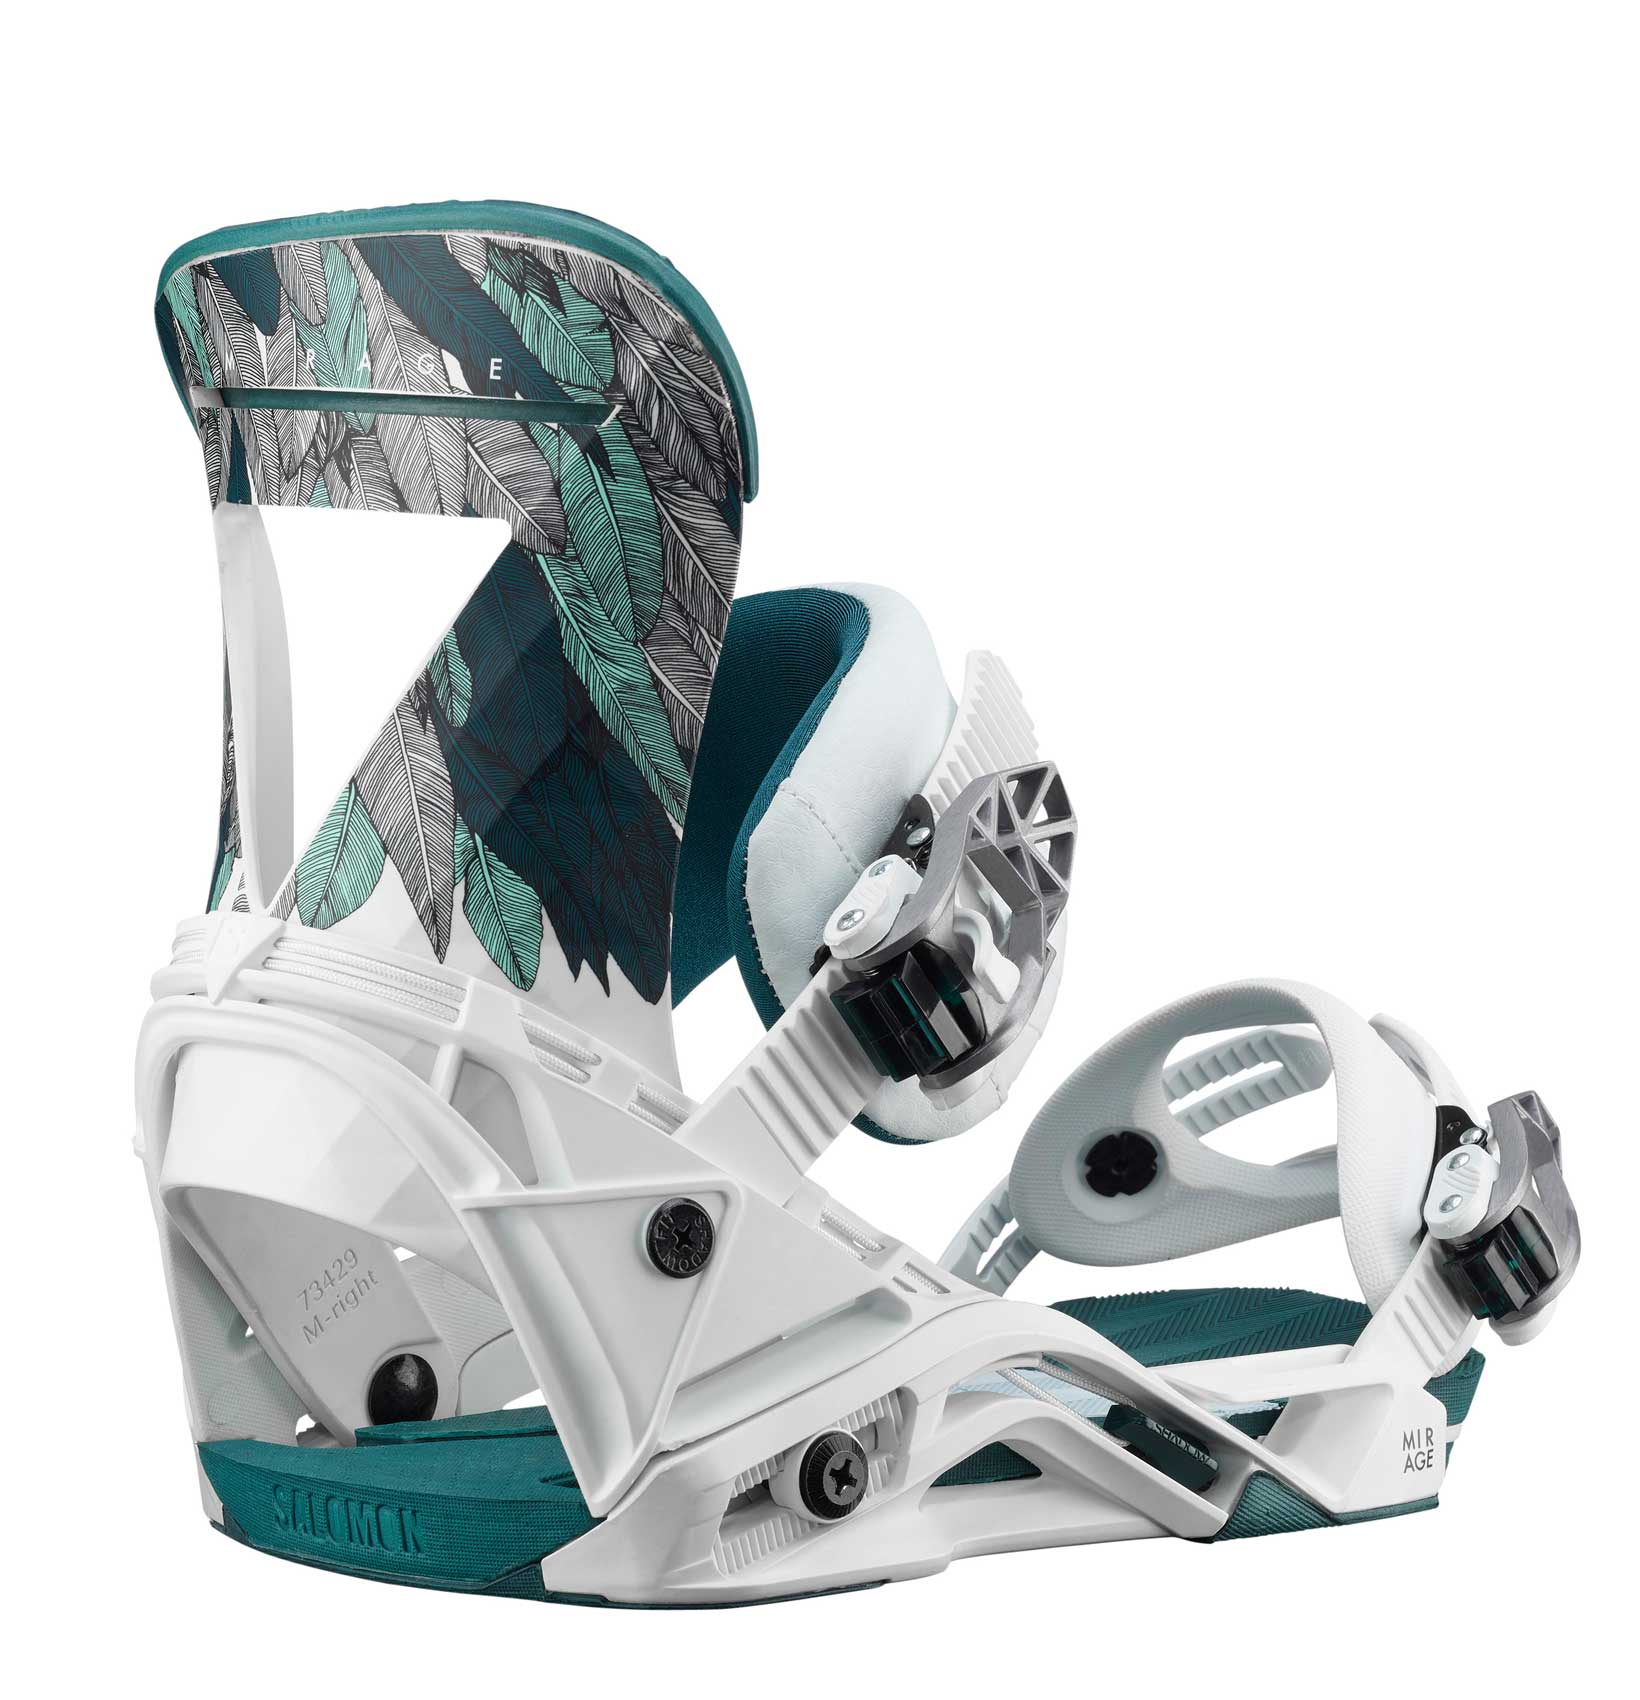 Salomon Mirage Womens Snowboard Bindings review